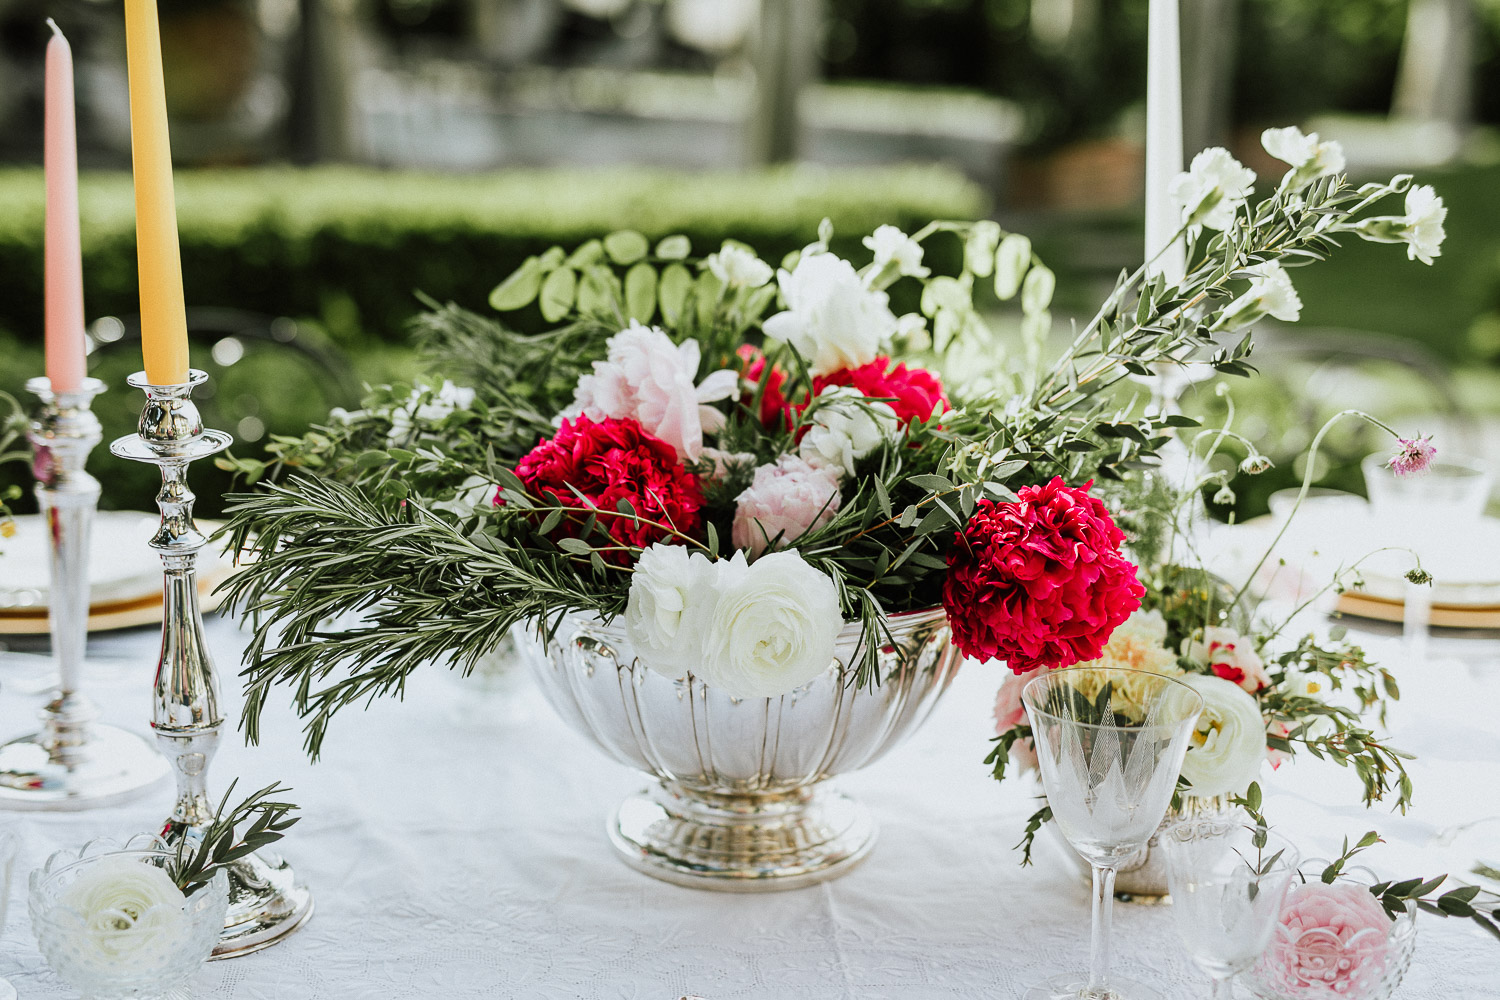 Cutlery with rosemary and red buttercup for a wedding in Italy at Villa Beccaris